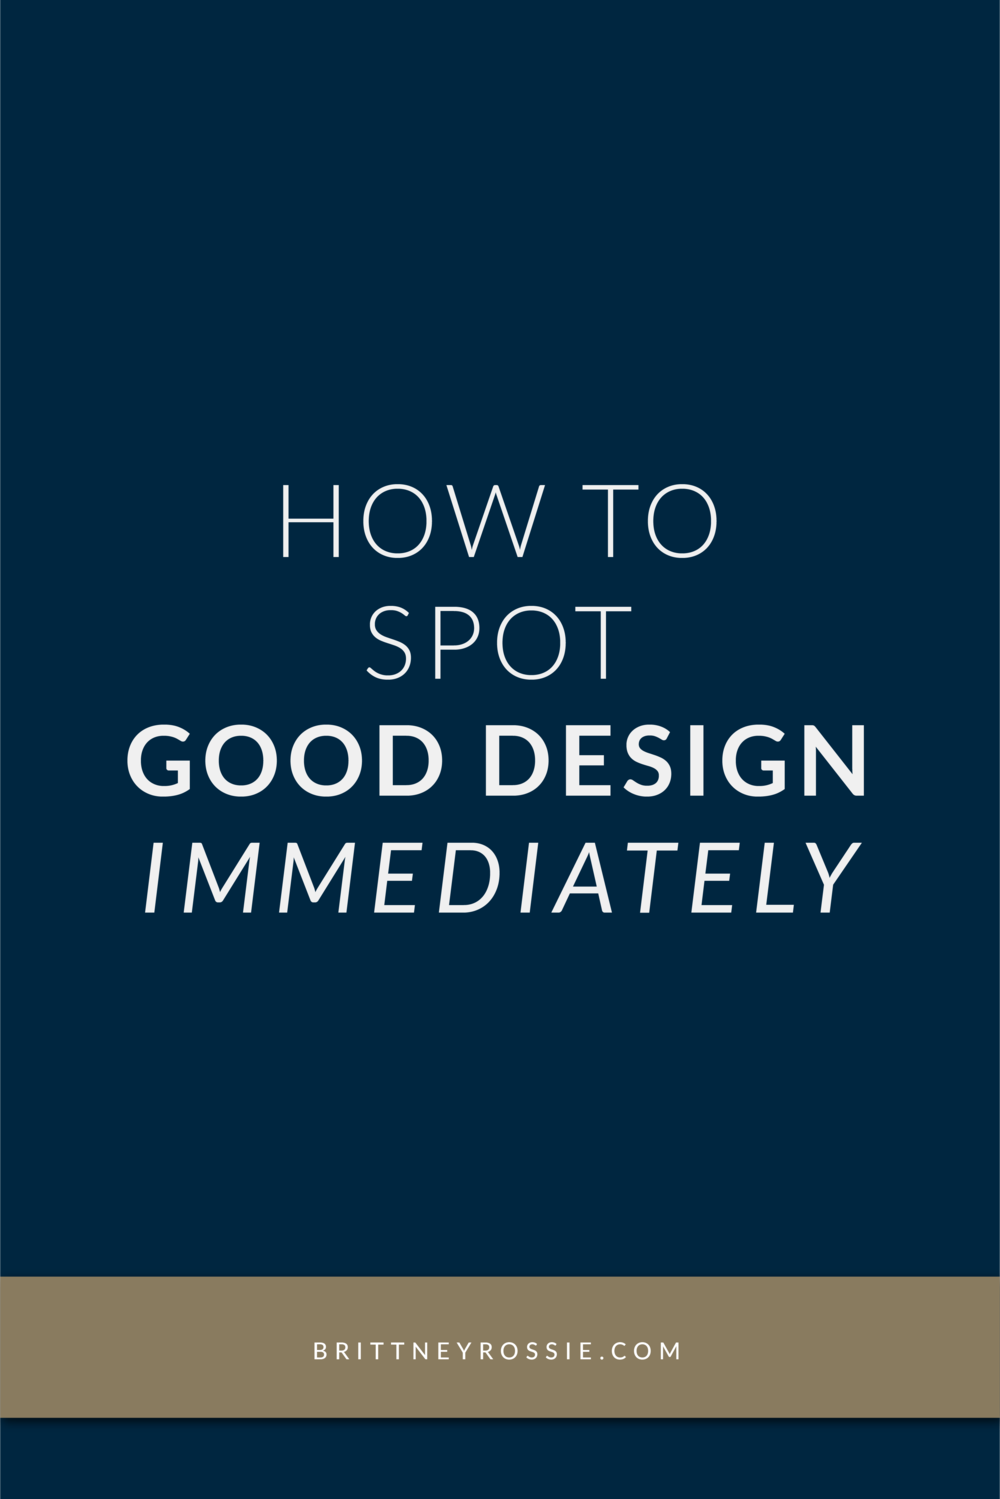 How-to-Spot-Good-Design_Immediately_BrittneyRossie.com.png